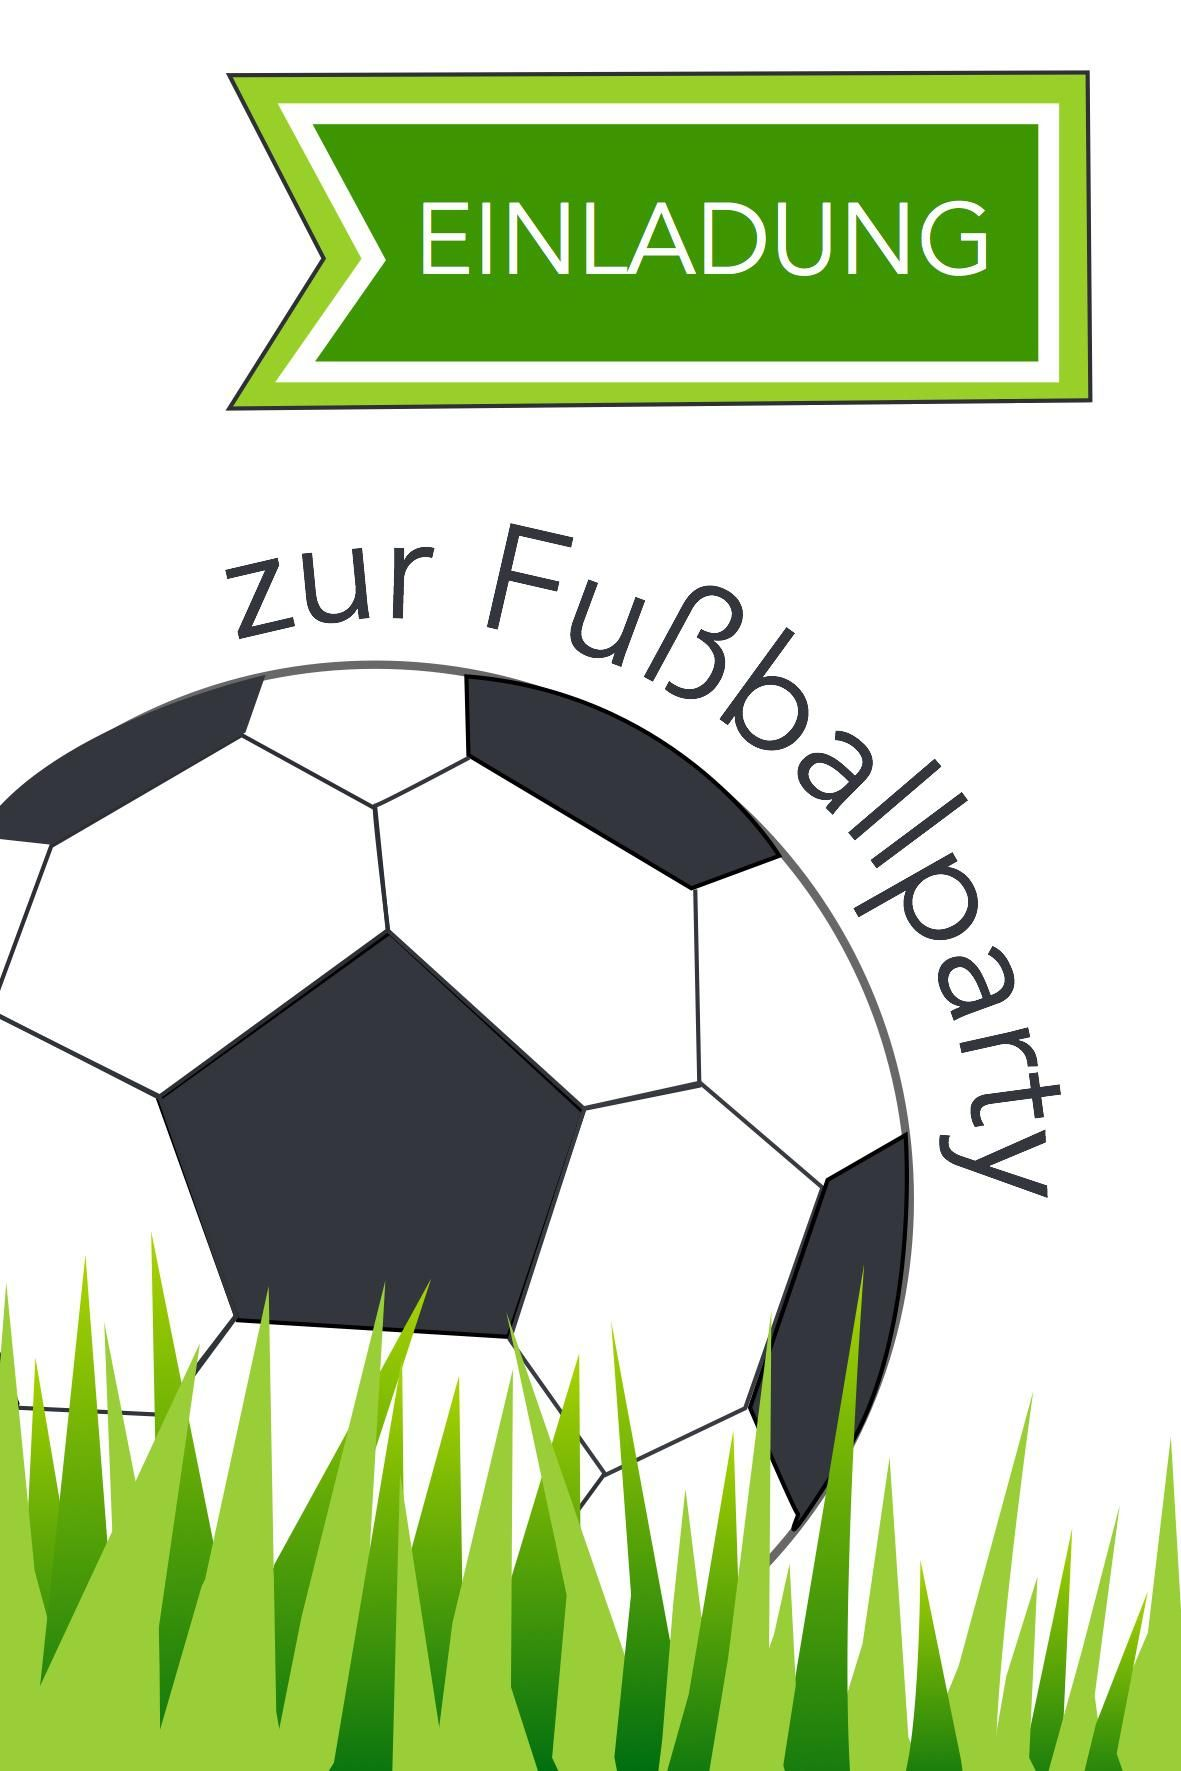 kindergeburtstag einladungen zum ausdrucken kostenlos fussball geburtstag einladung. Black Bedroom Furniture Sets. Home Design Ideas